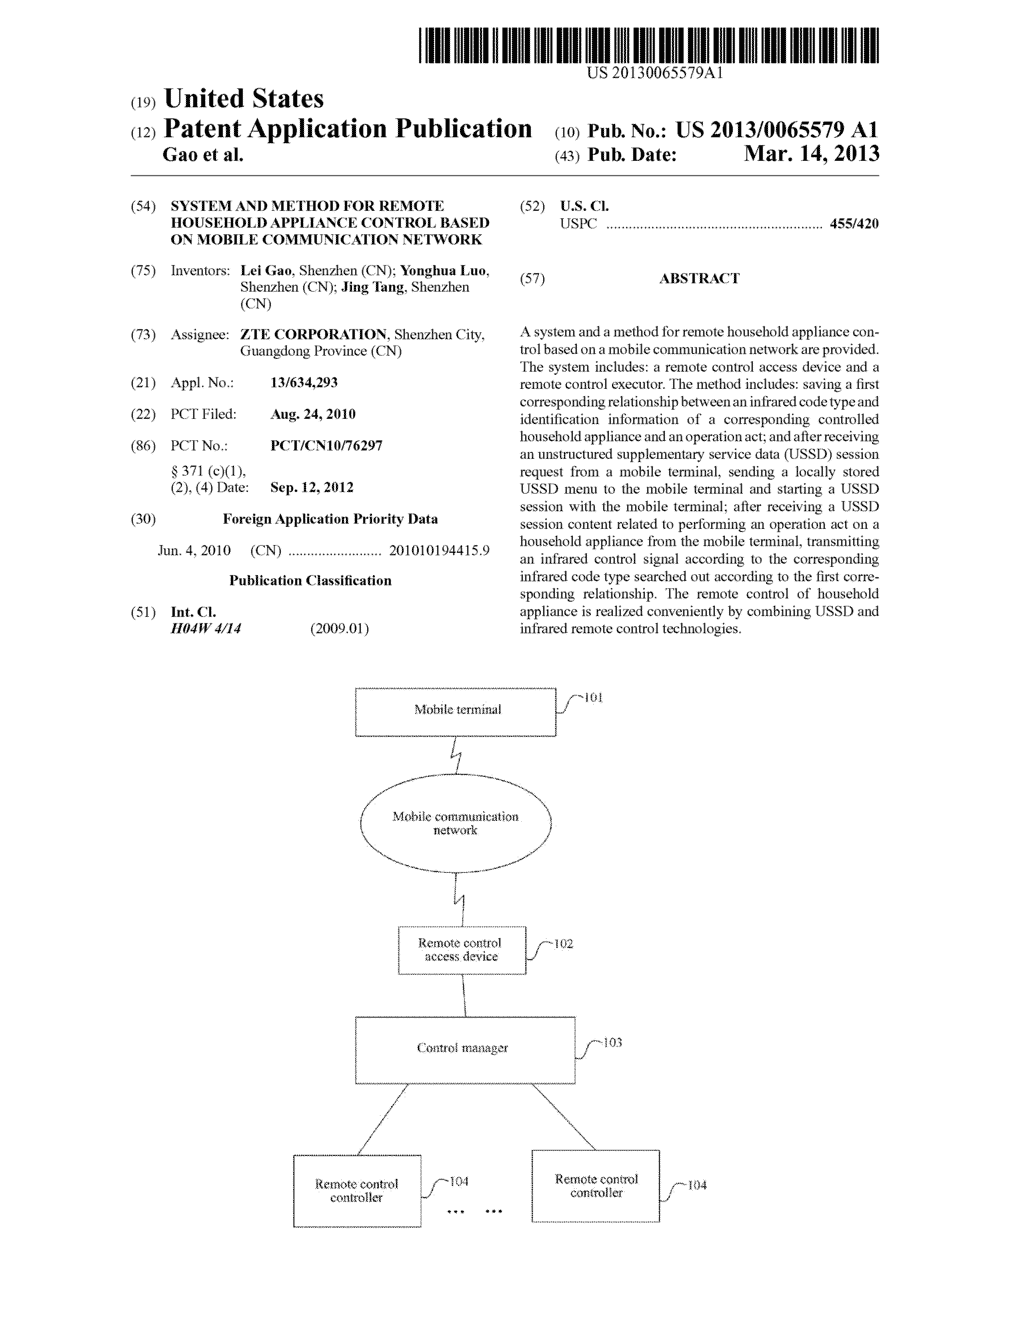 System and Method for Remote Household Appliance Control Based on Mobile     Communication Network - diagram, schematic, and image 01